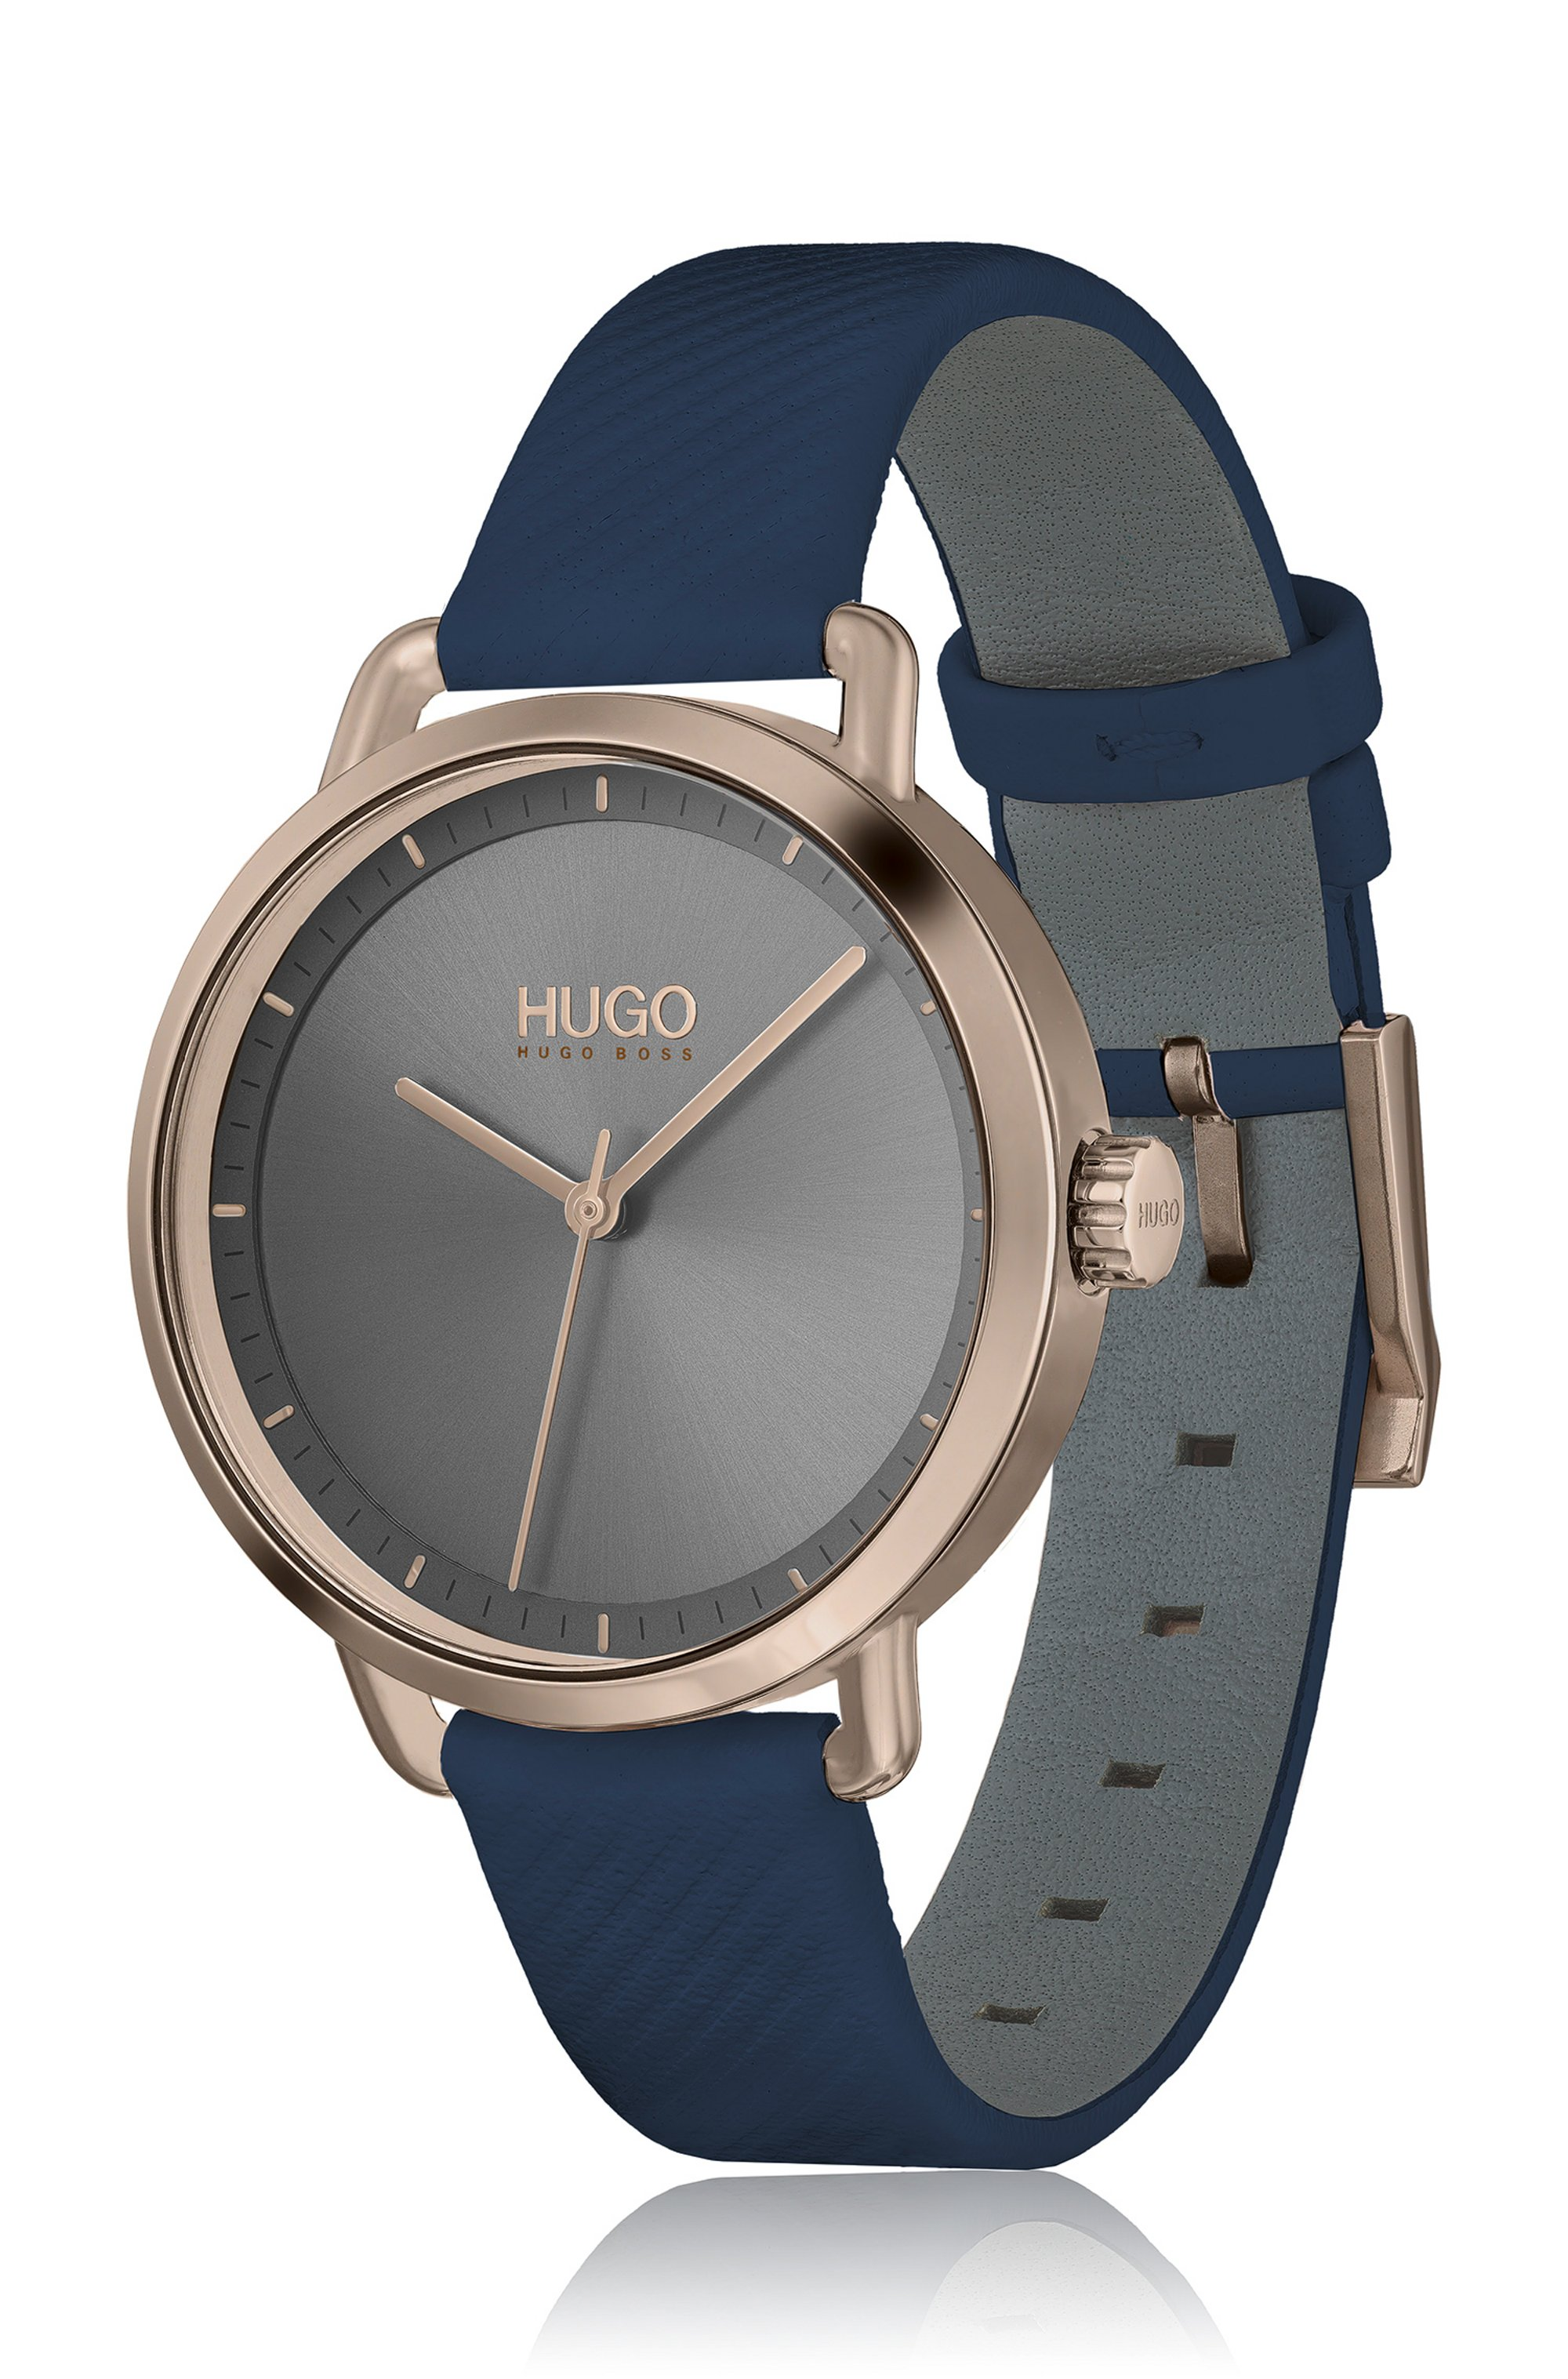 Beige-gold-effect watch with blue leather strap